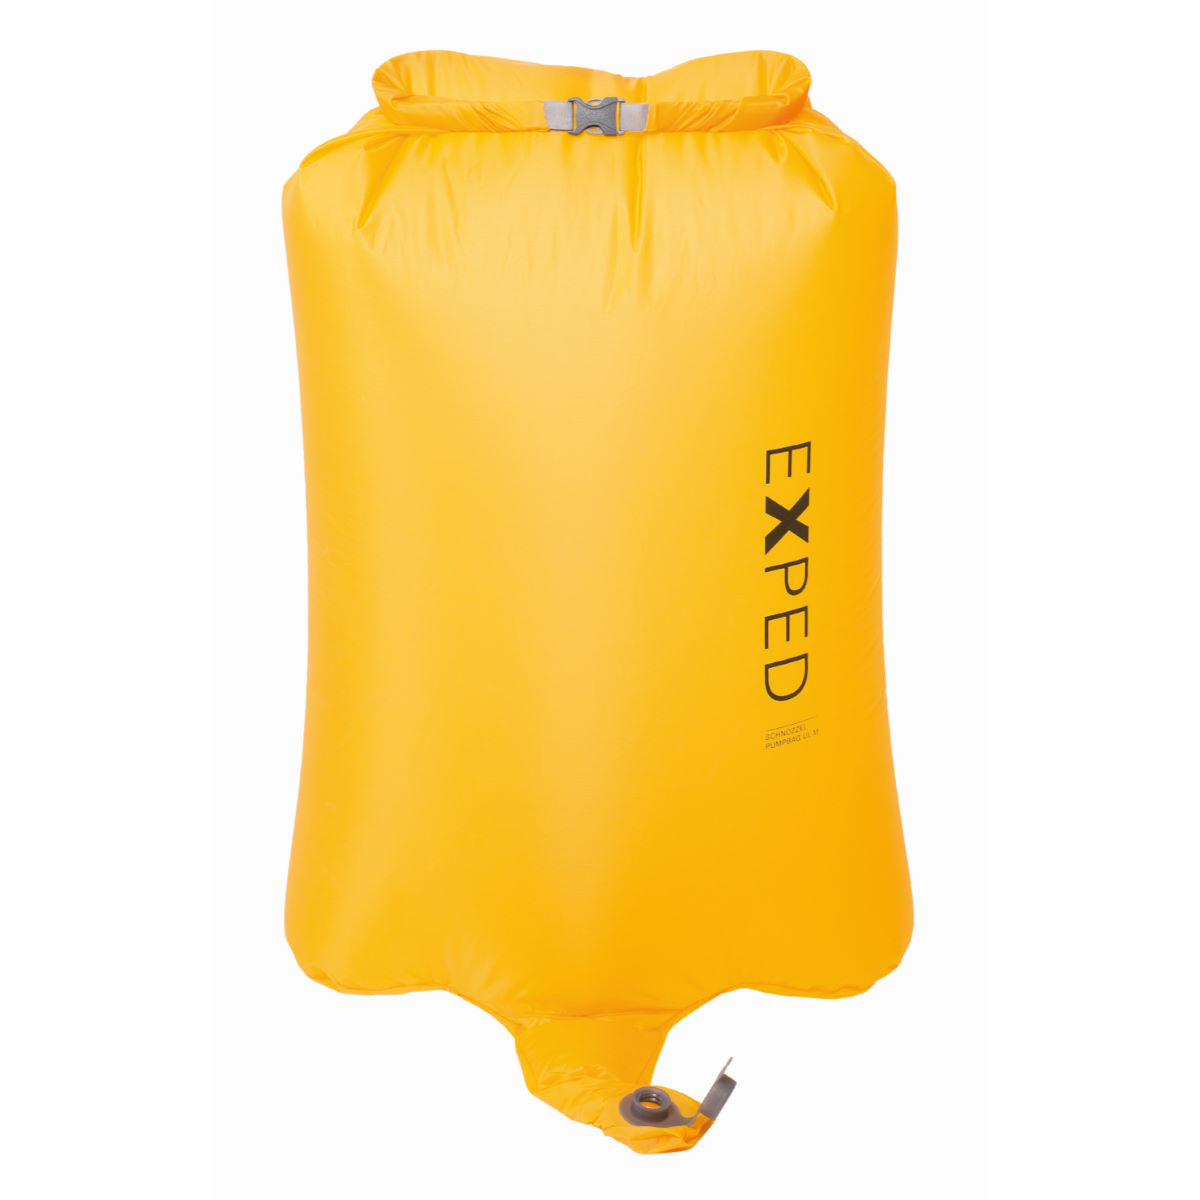 Exped Exped Schnozzel Pumpbag UL   Sleeping Accessories